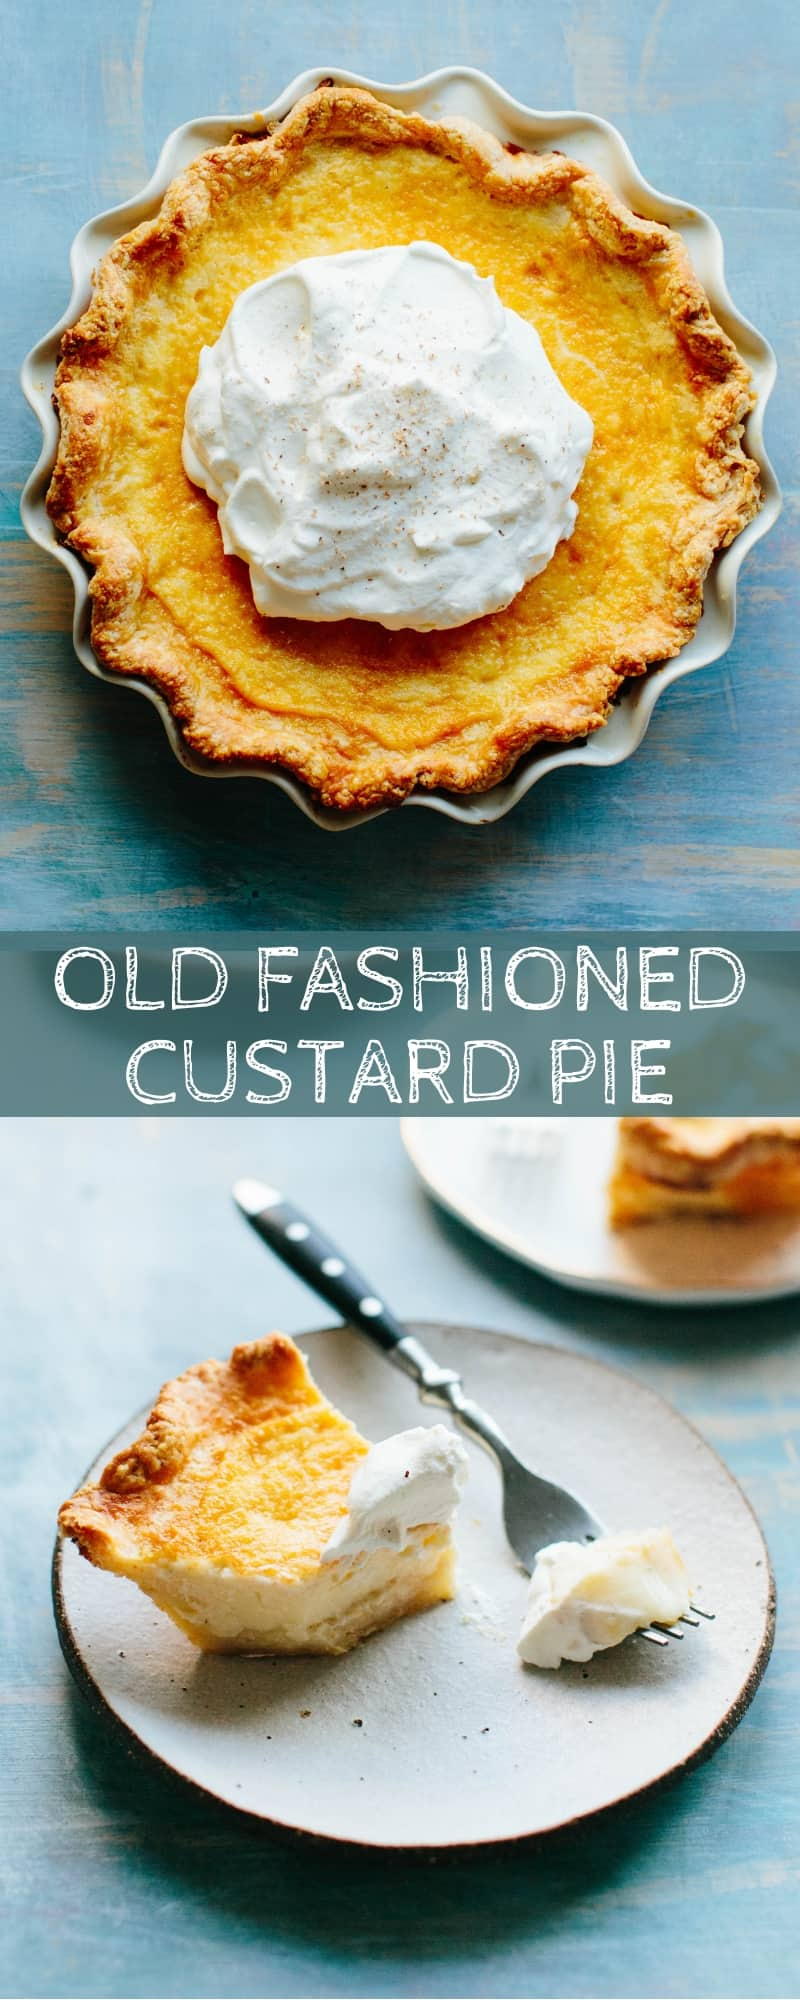 This Old Fashioned Custard Pie is a simple, easy recipe passed down from my grandmother! Rich and creamy nutmeg scented custard nestled inside a flaky buttermilk pie crust. #easy #thanksgiving #egg #custard #pie #recipe | ColeyCooks.com